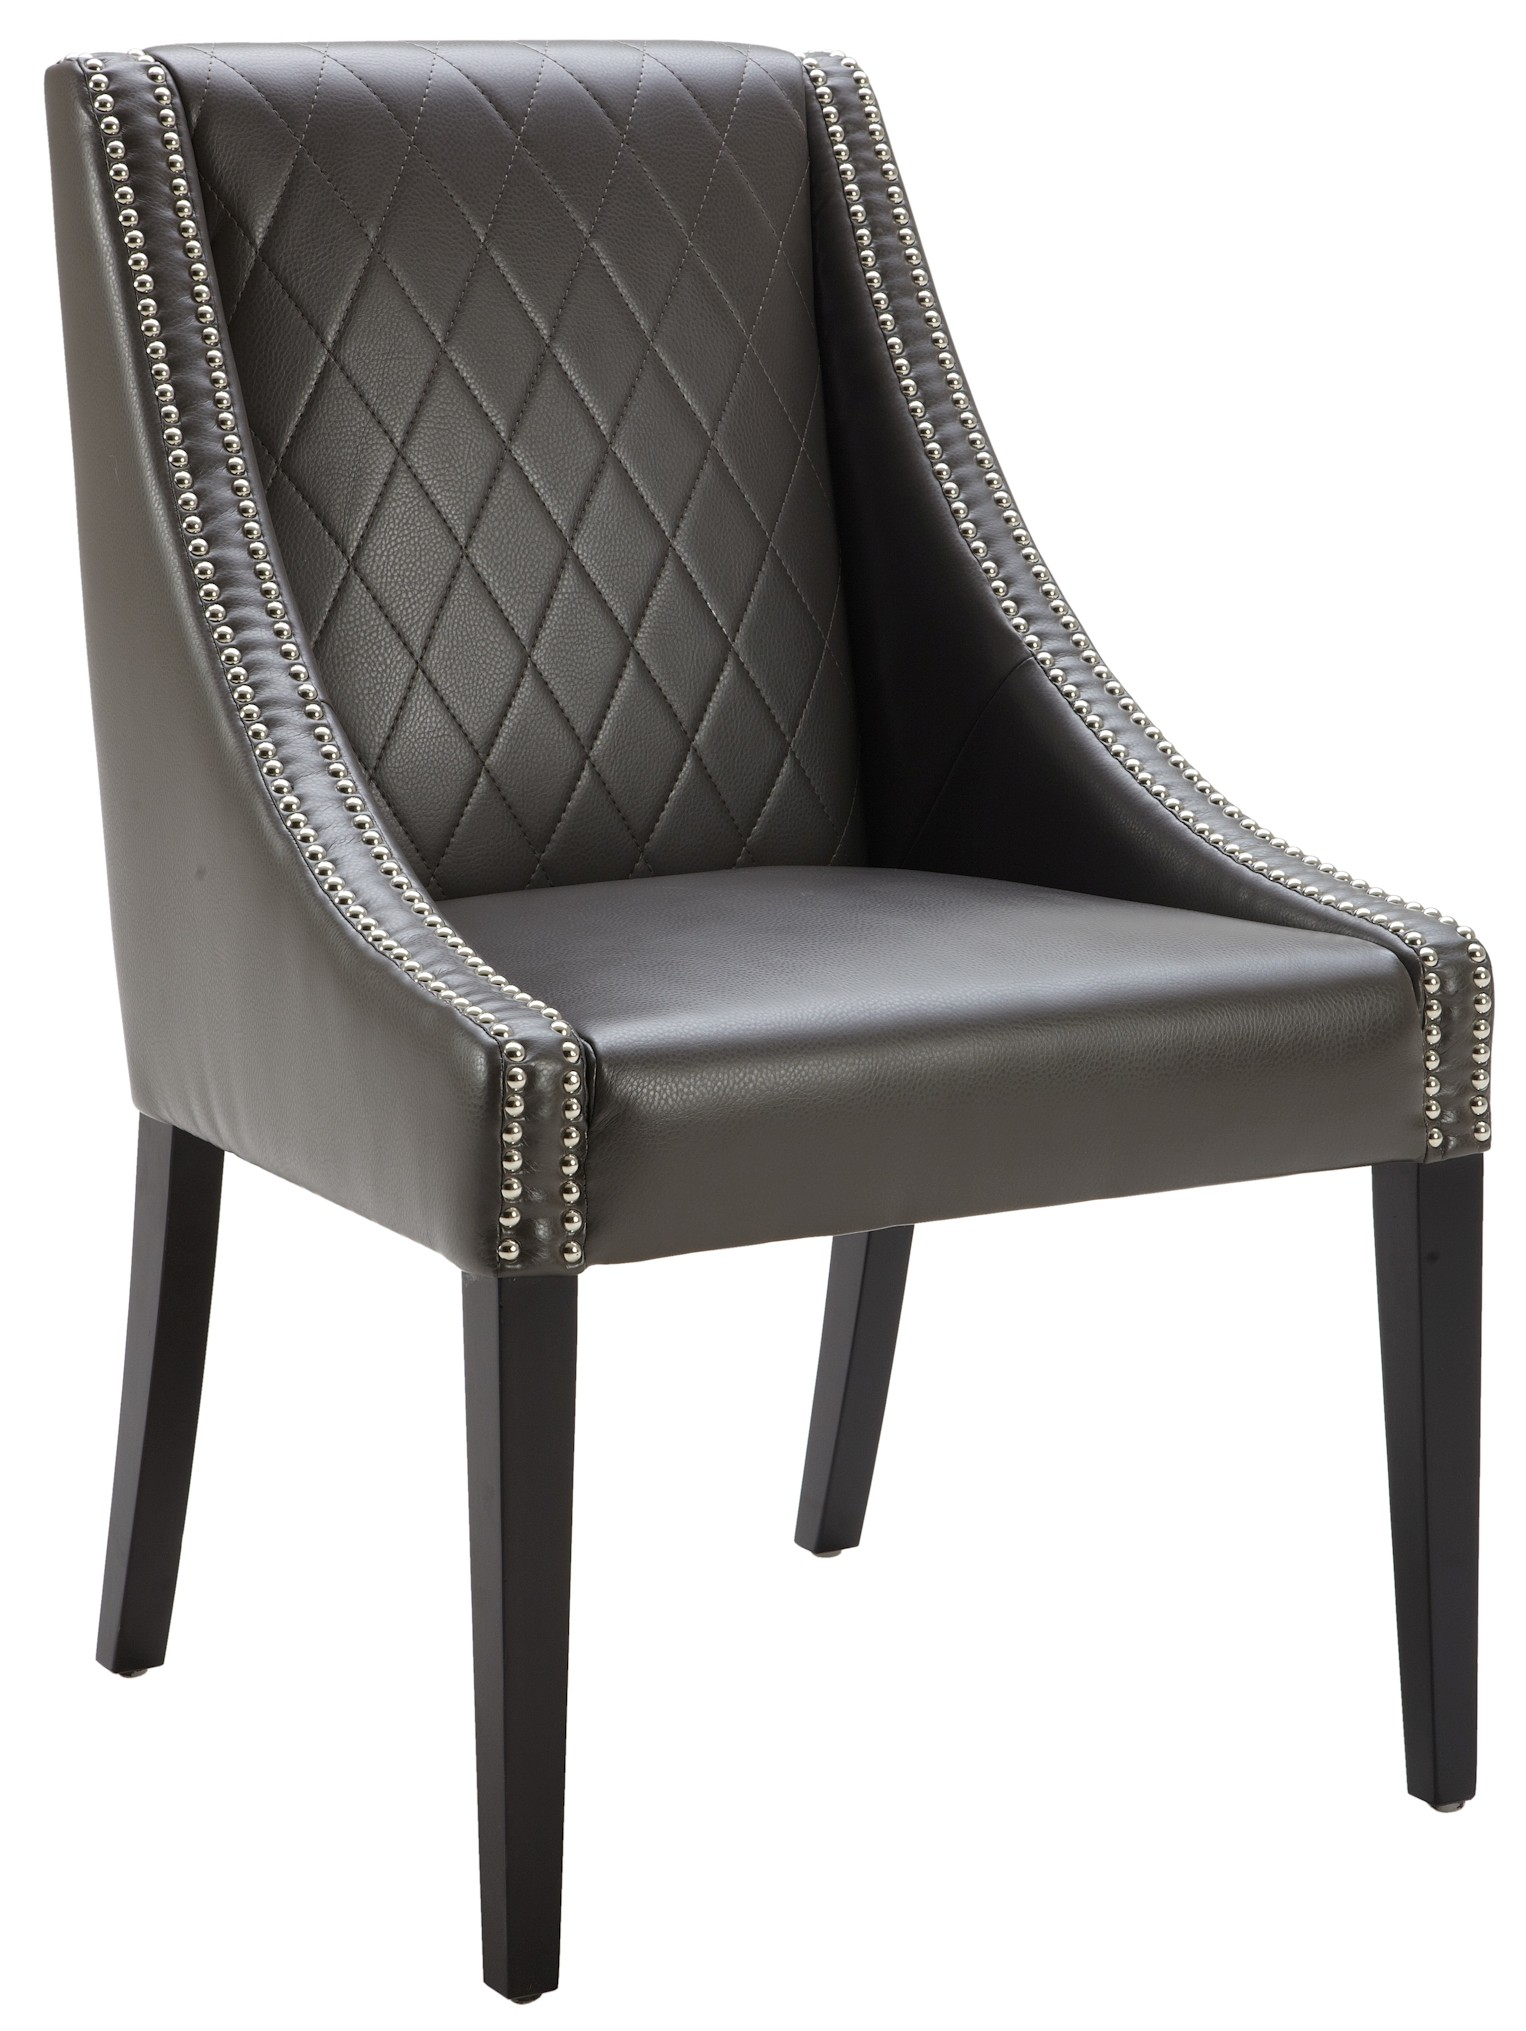 Gray Dining Chair Malabar Grey Dining Chair From Sunpan 59215 Coleman